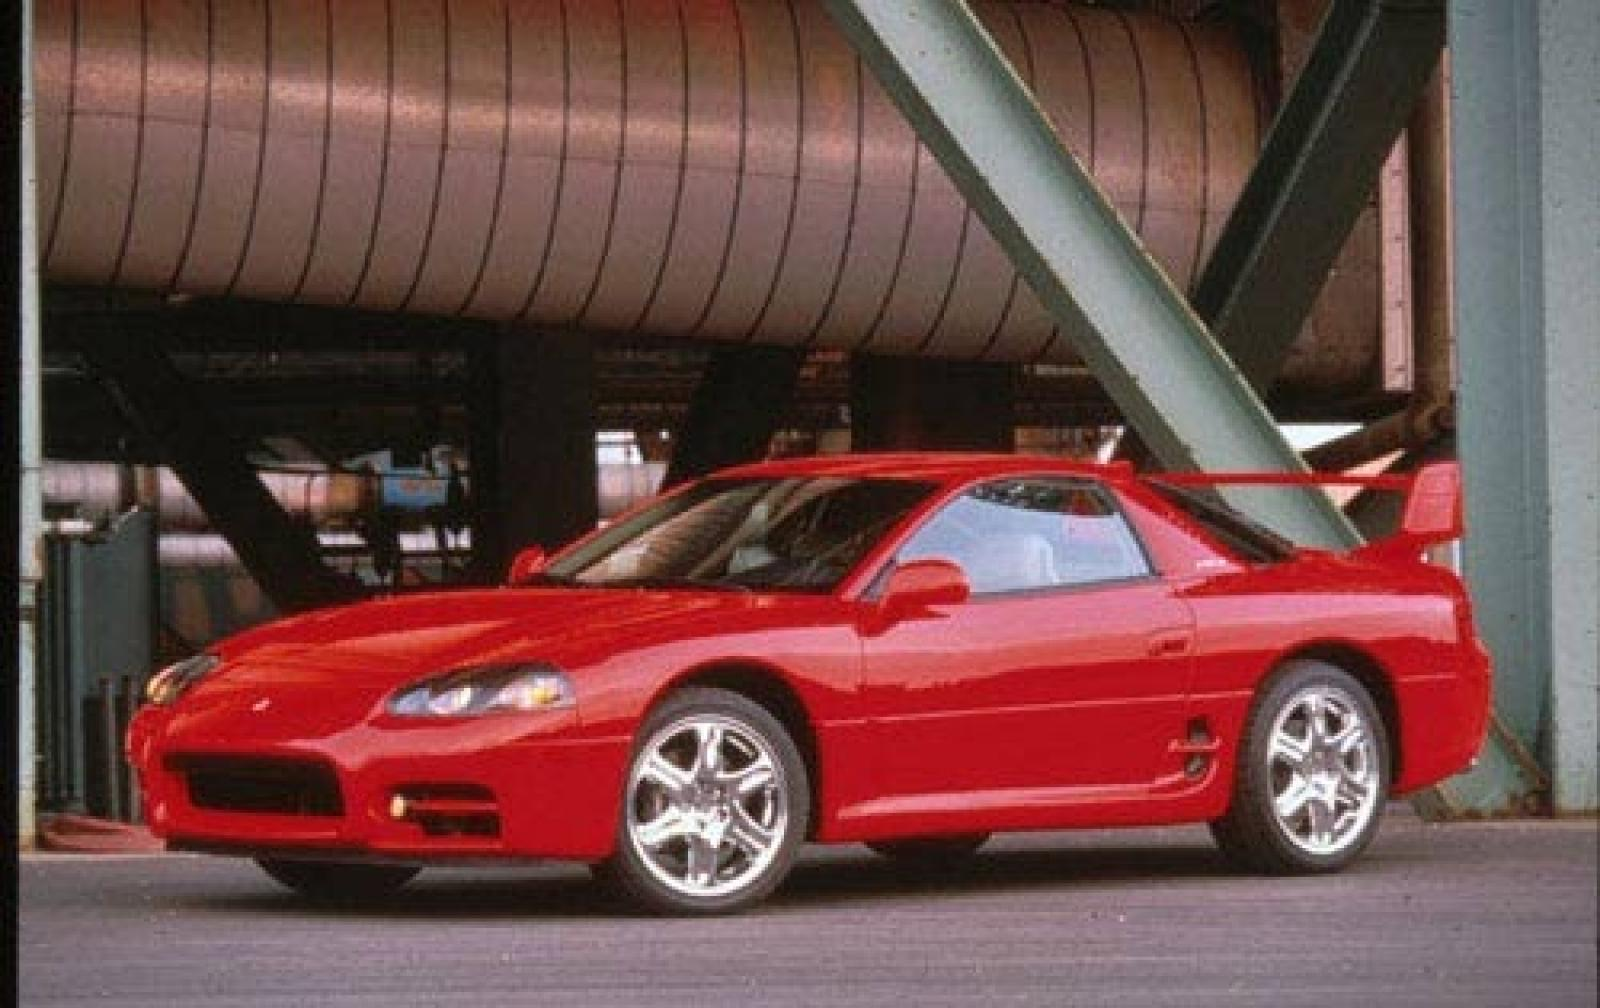 1999 mitsubishi 3000gt information and photos zombiedrive. Black Bedroom Furniture Sets. Home Design Ideas